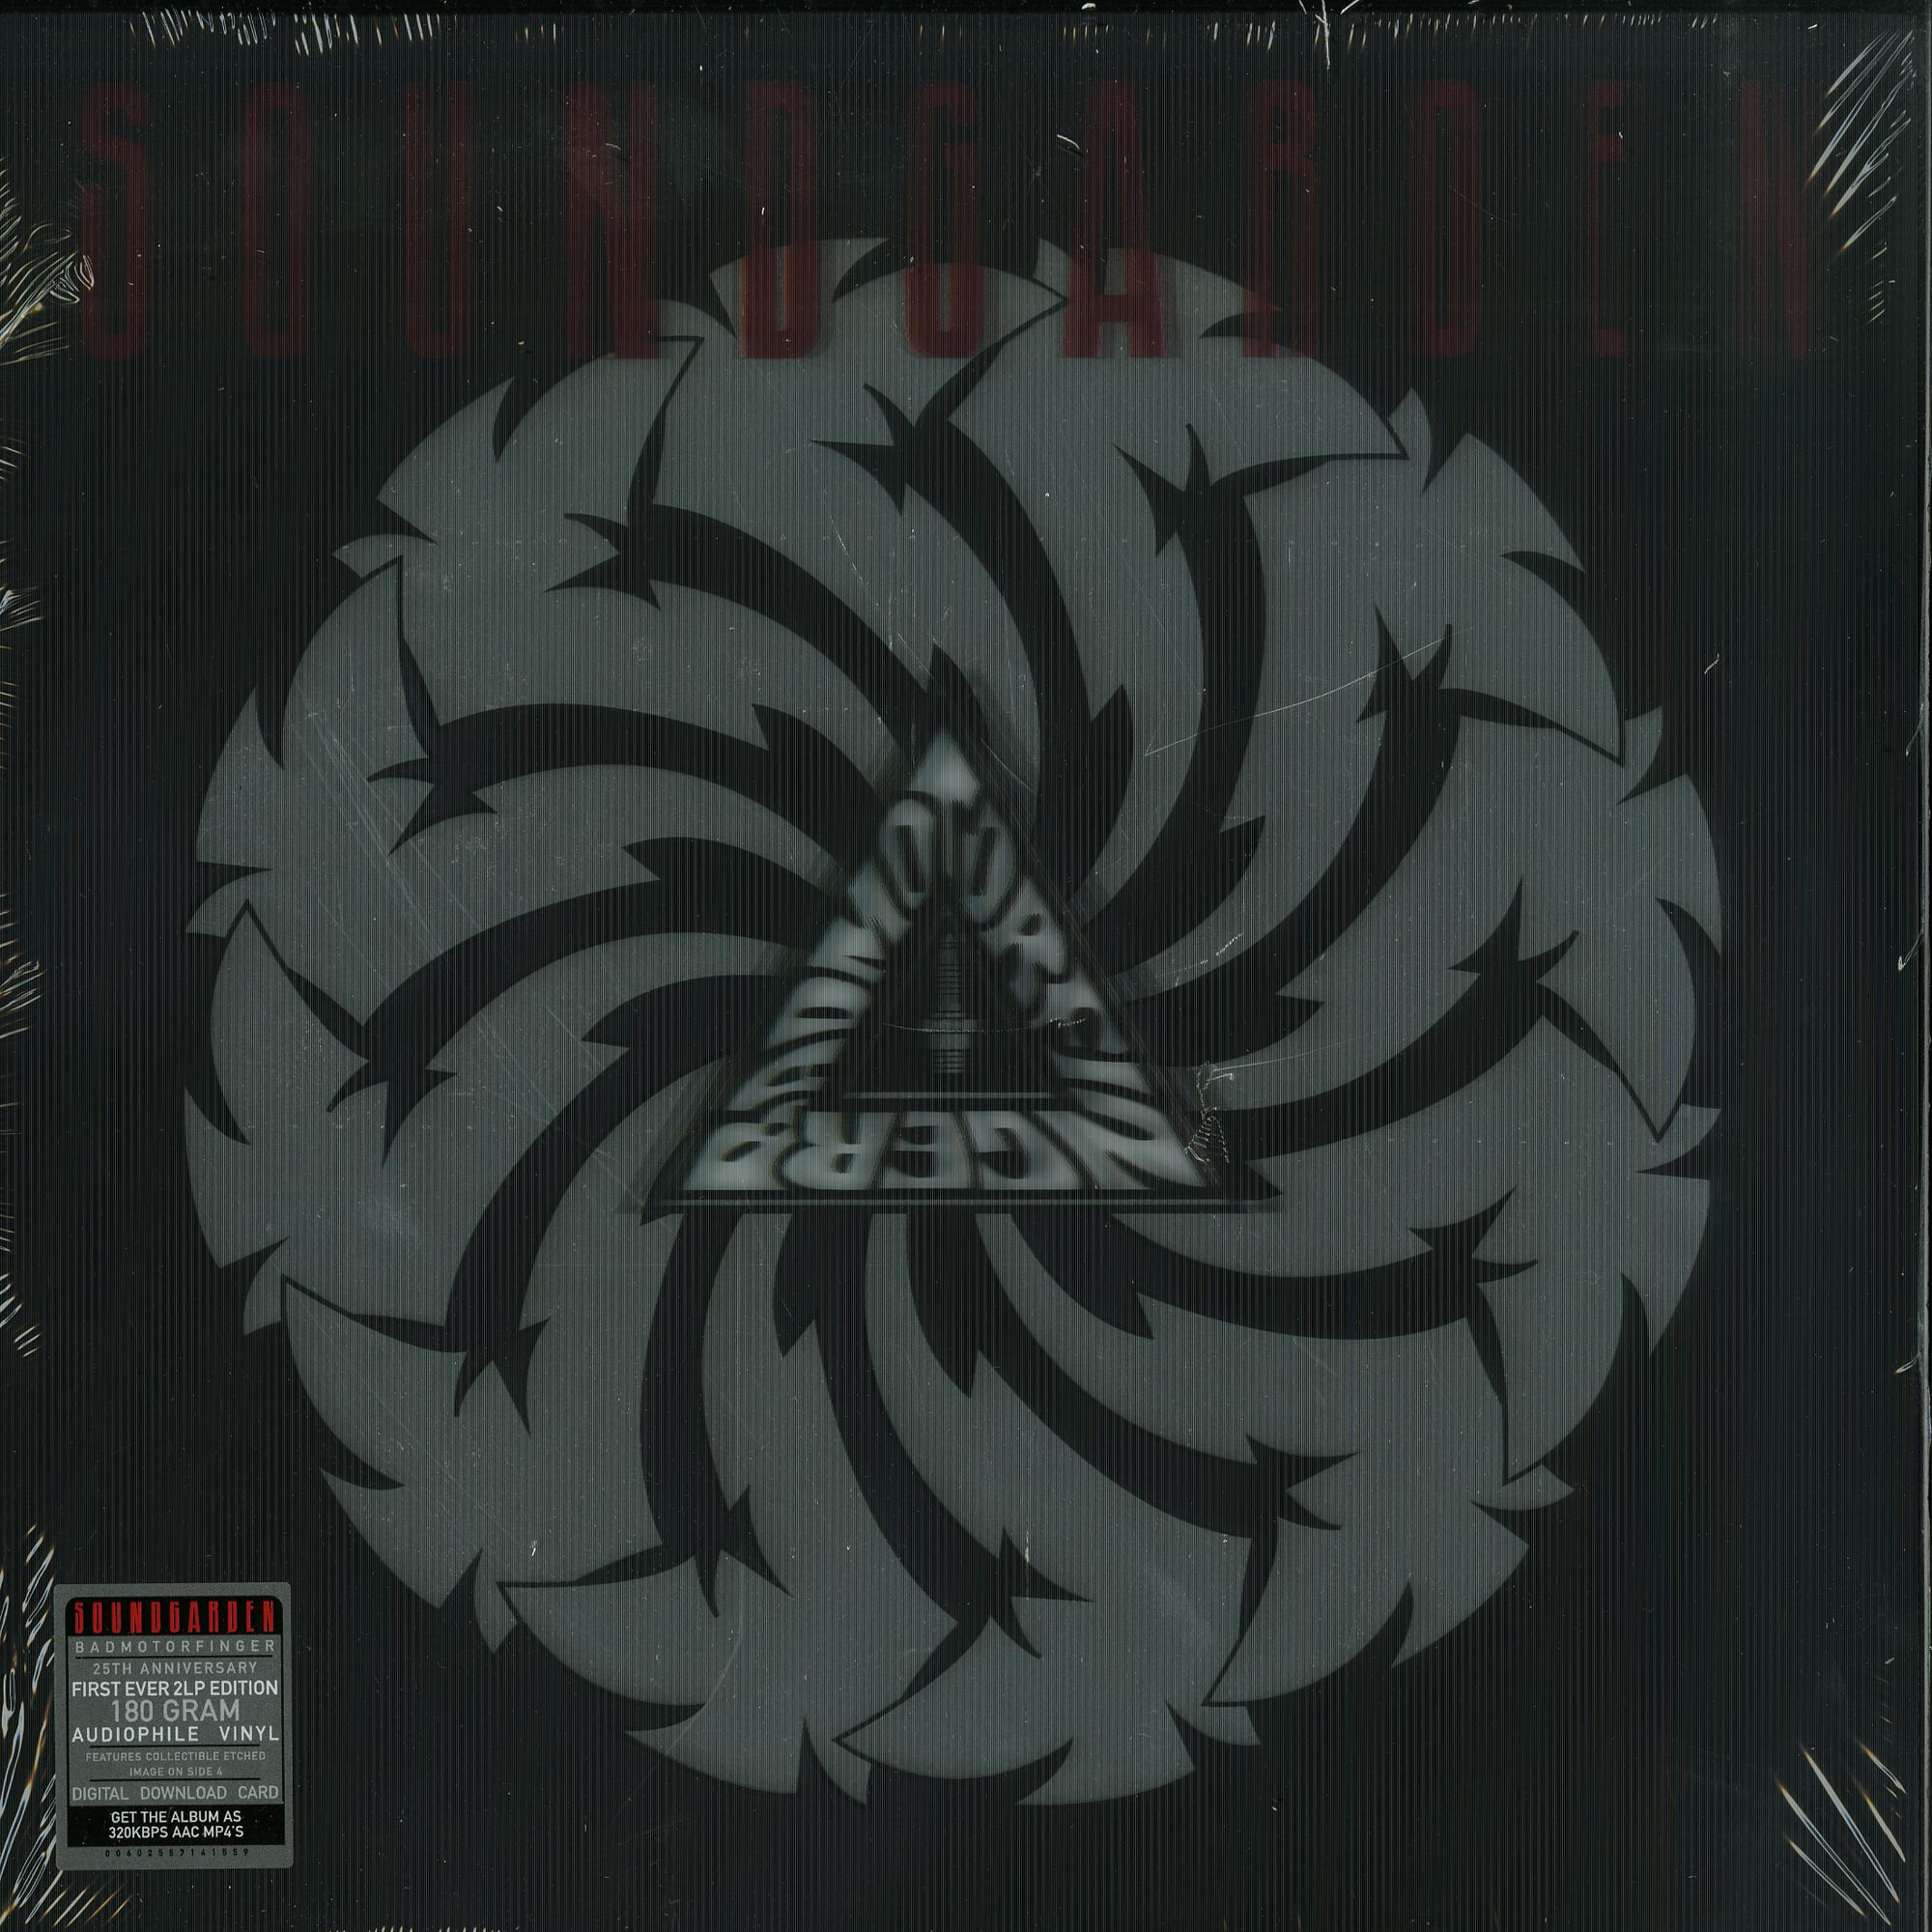 Soundgarden - BADMOTORFINGER